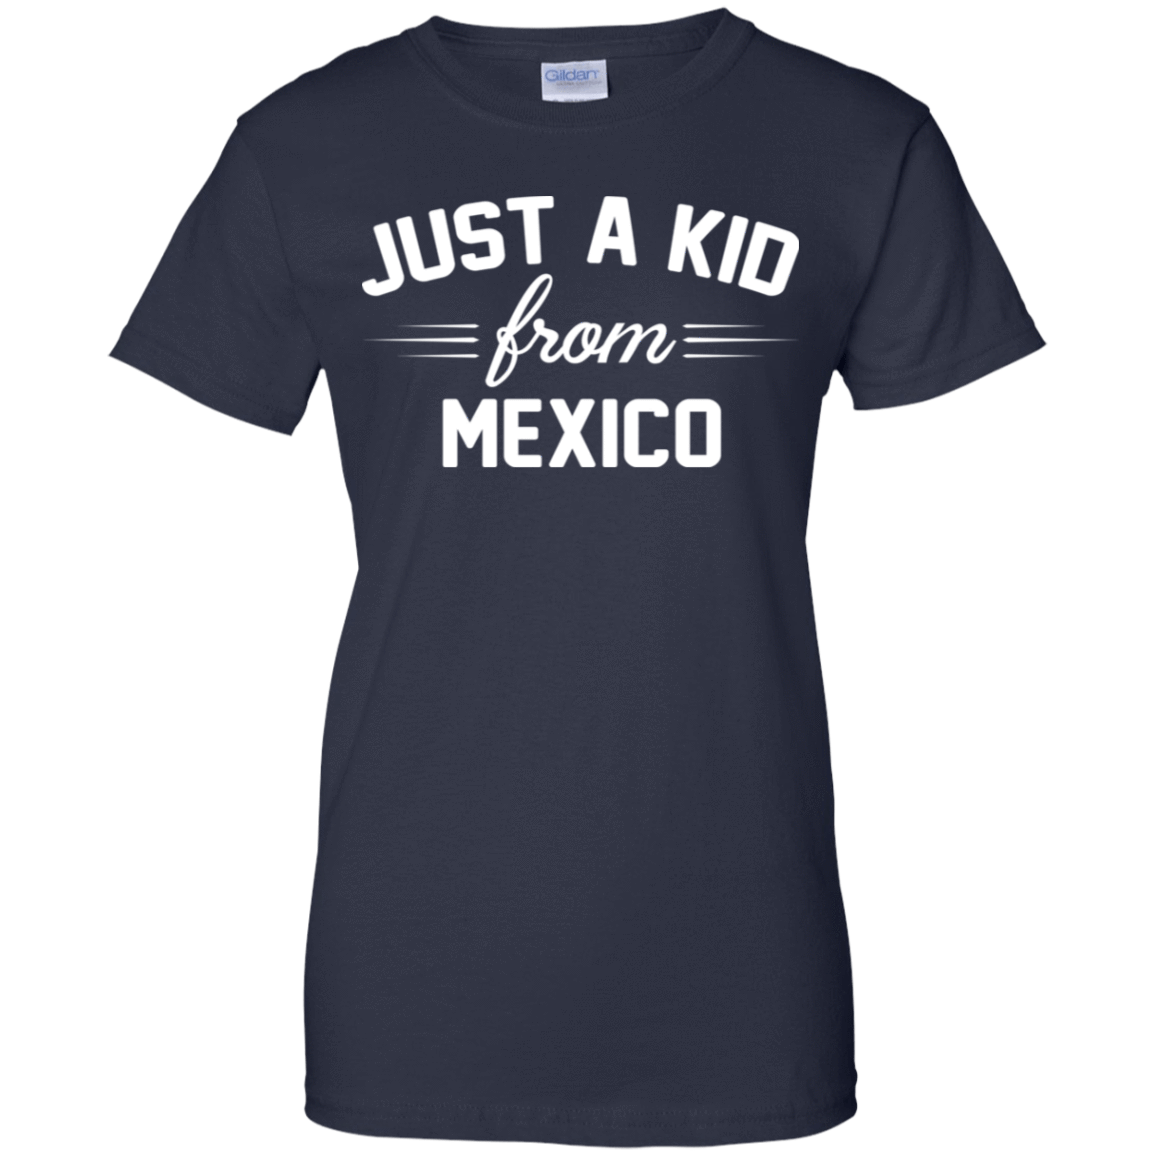 Just a Kid Store | Mexico T-Shirts, Hoodie, Tank 939-9259-72091593-44765 - Tee Ript